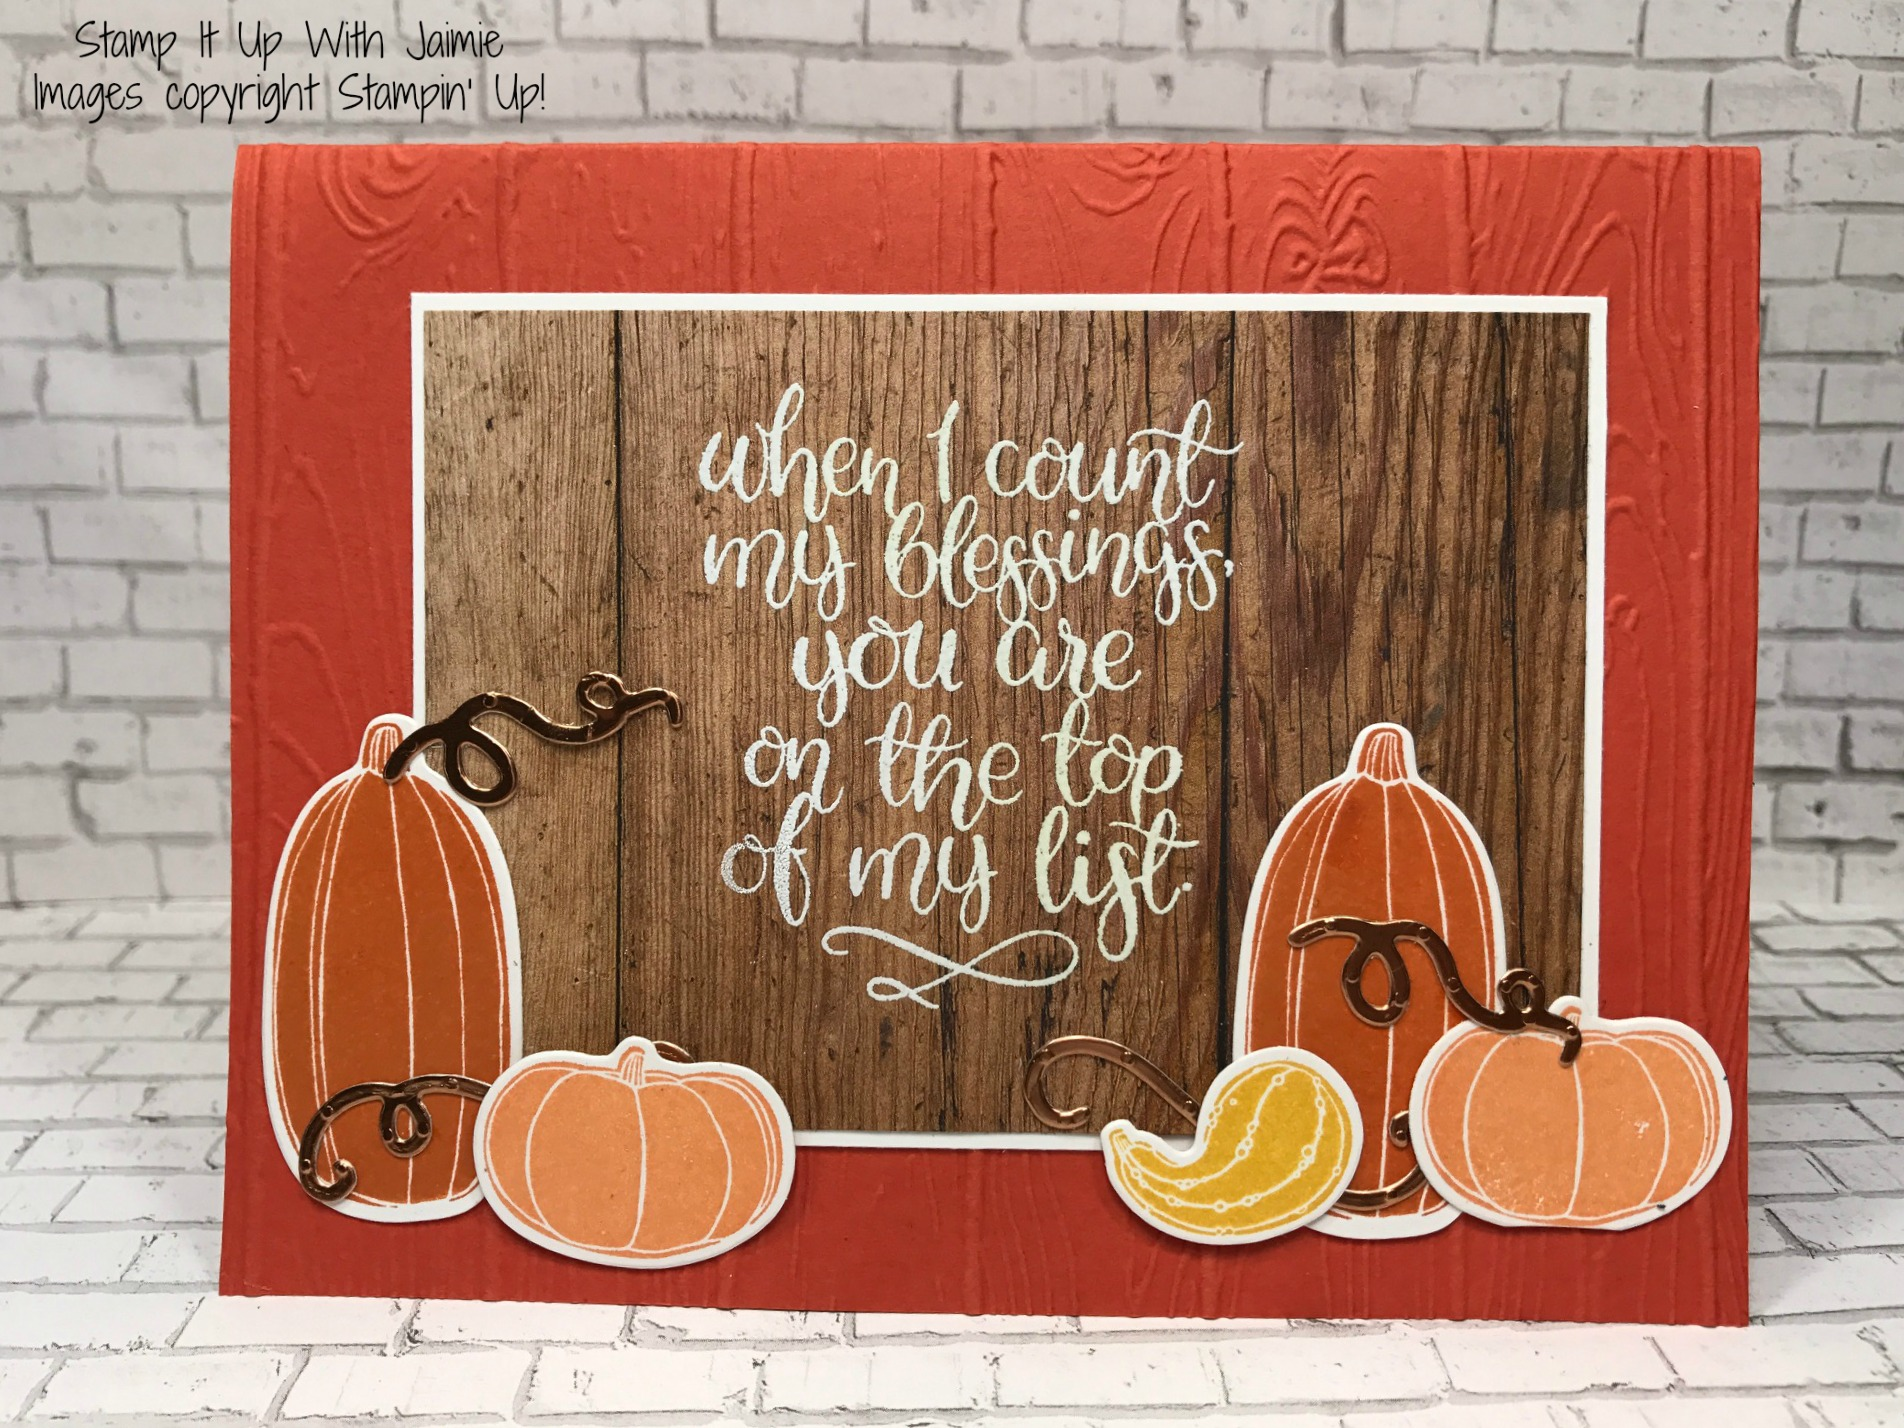 stampin up pick a pumpkin blessings stamp it up with jaimie